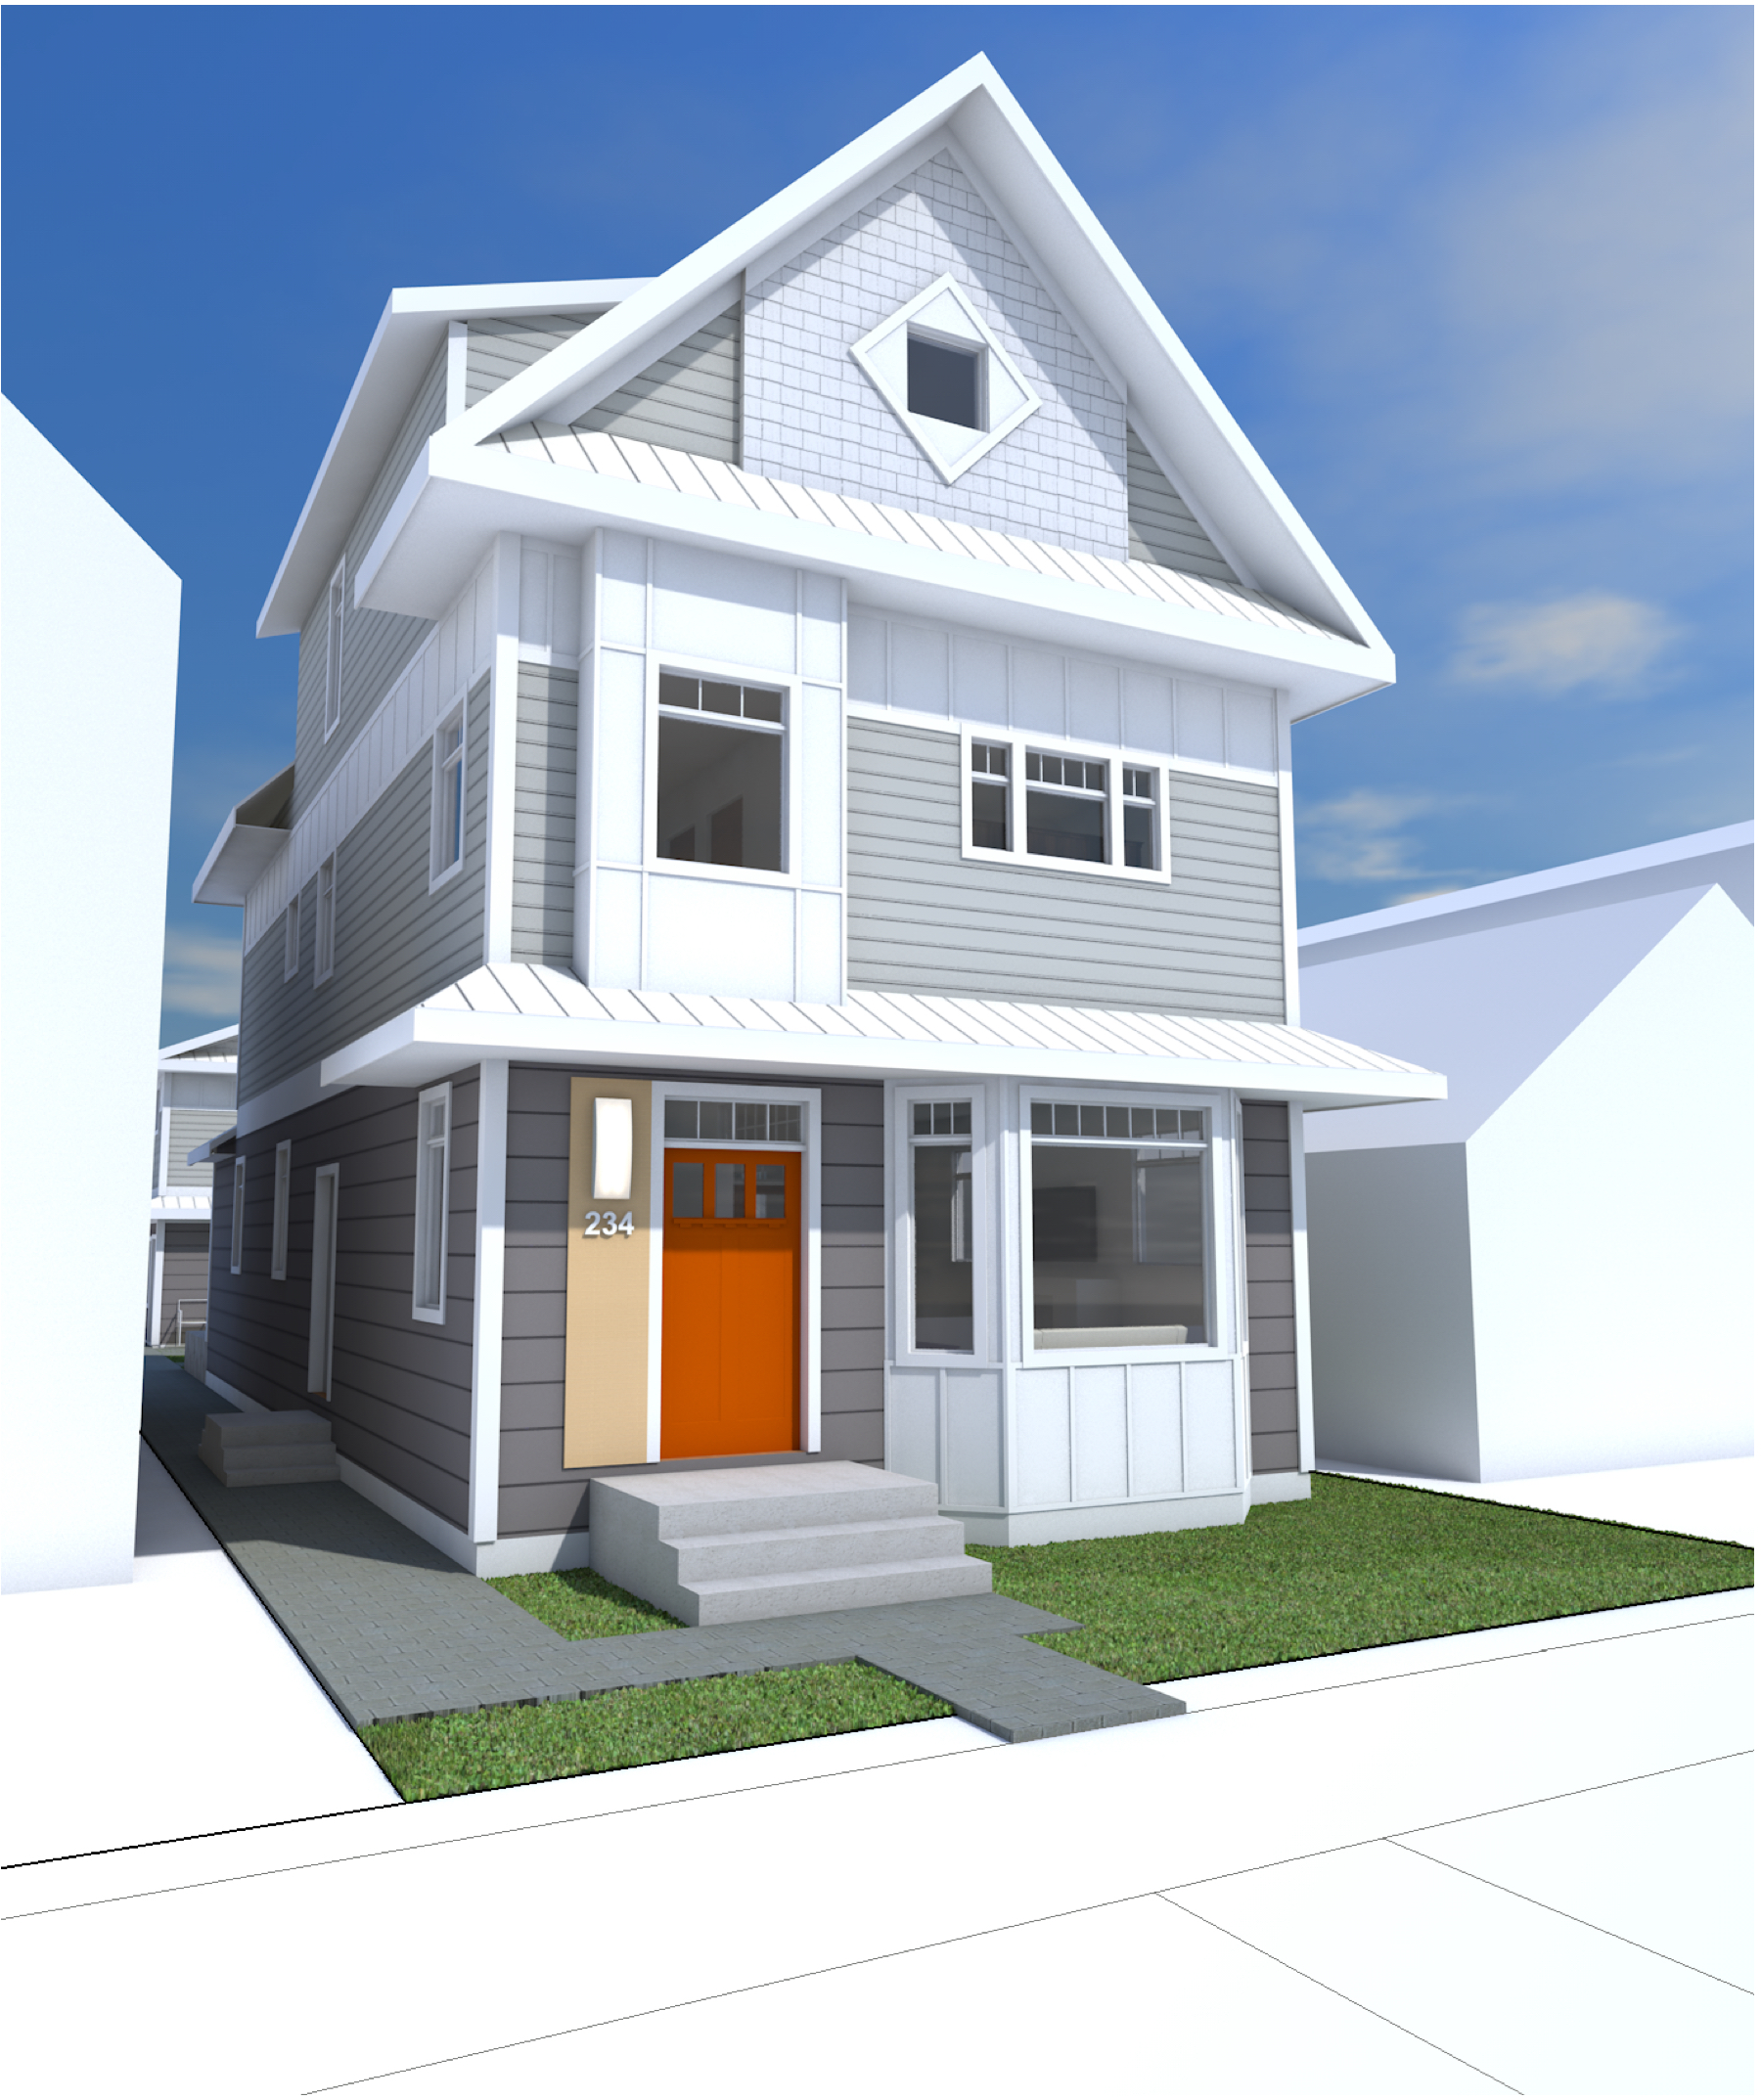 Rendering of exterior of a 3 storey infill house in a light grey neutral colour scheme with bright orange front door, bay windows and light colour metal roof.